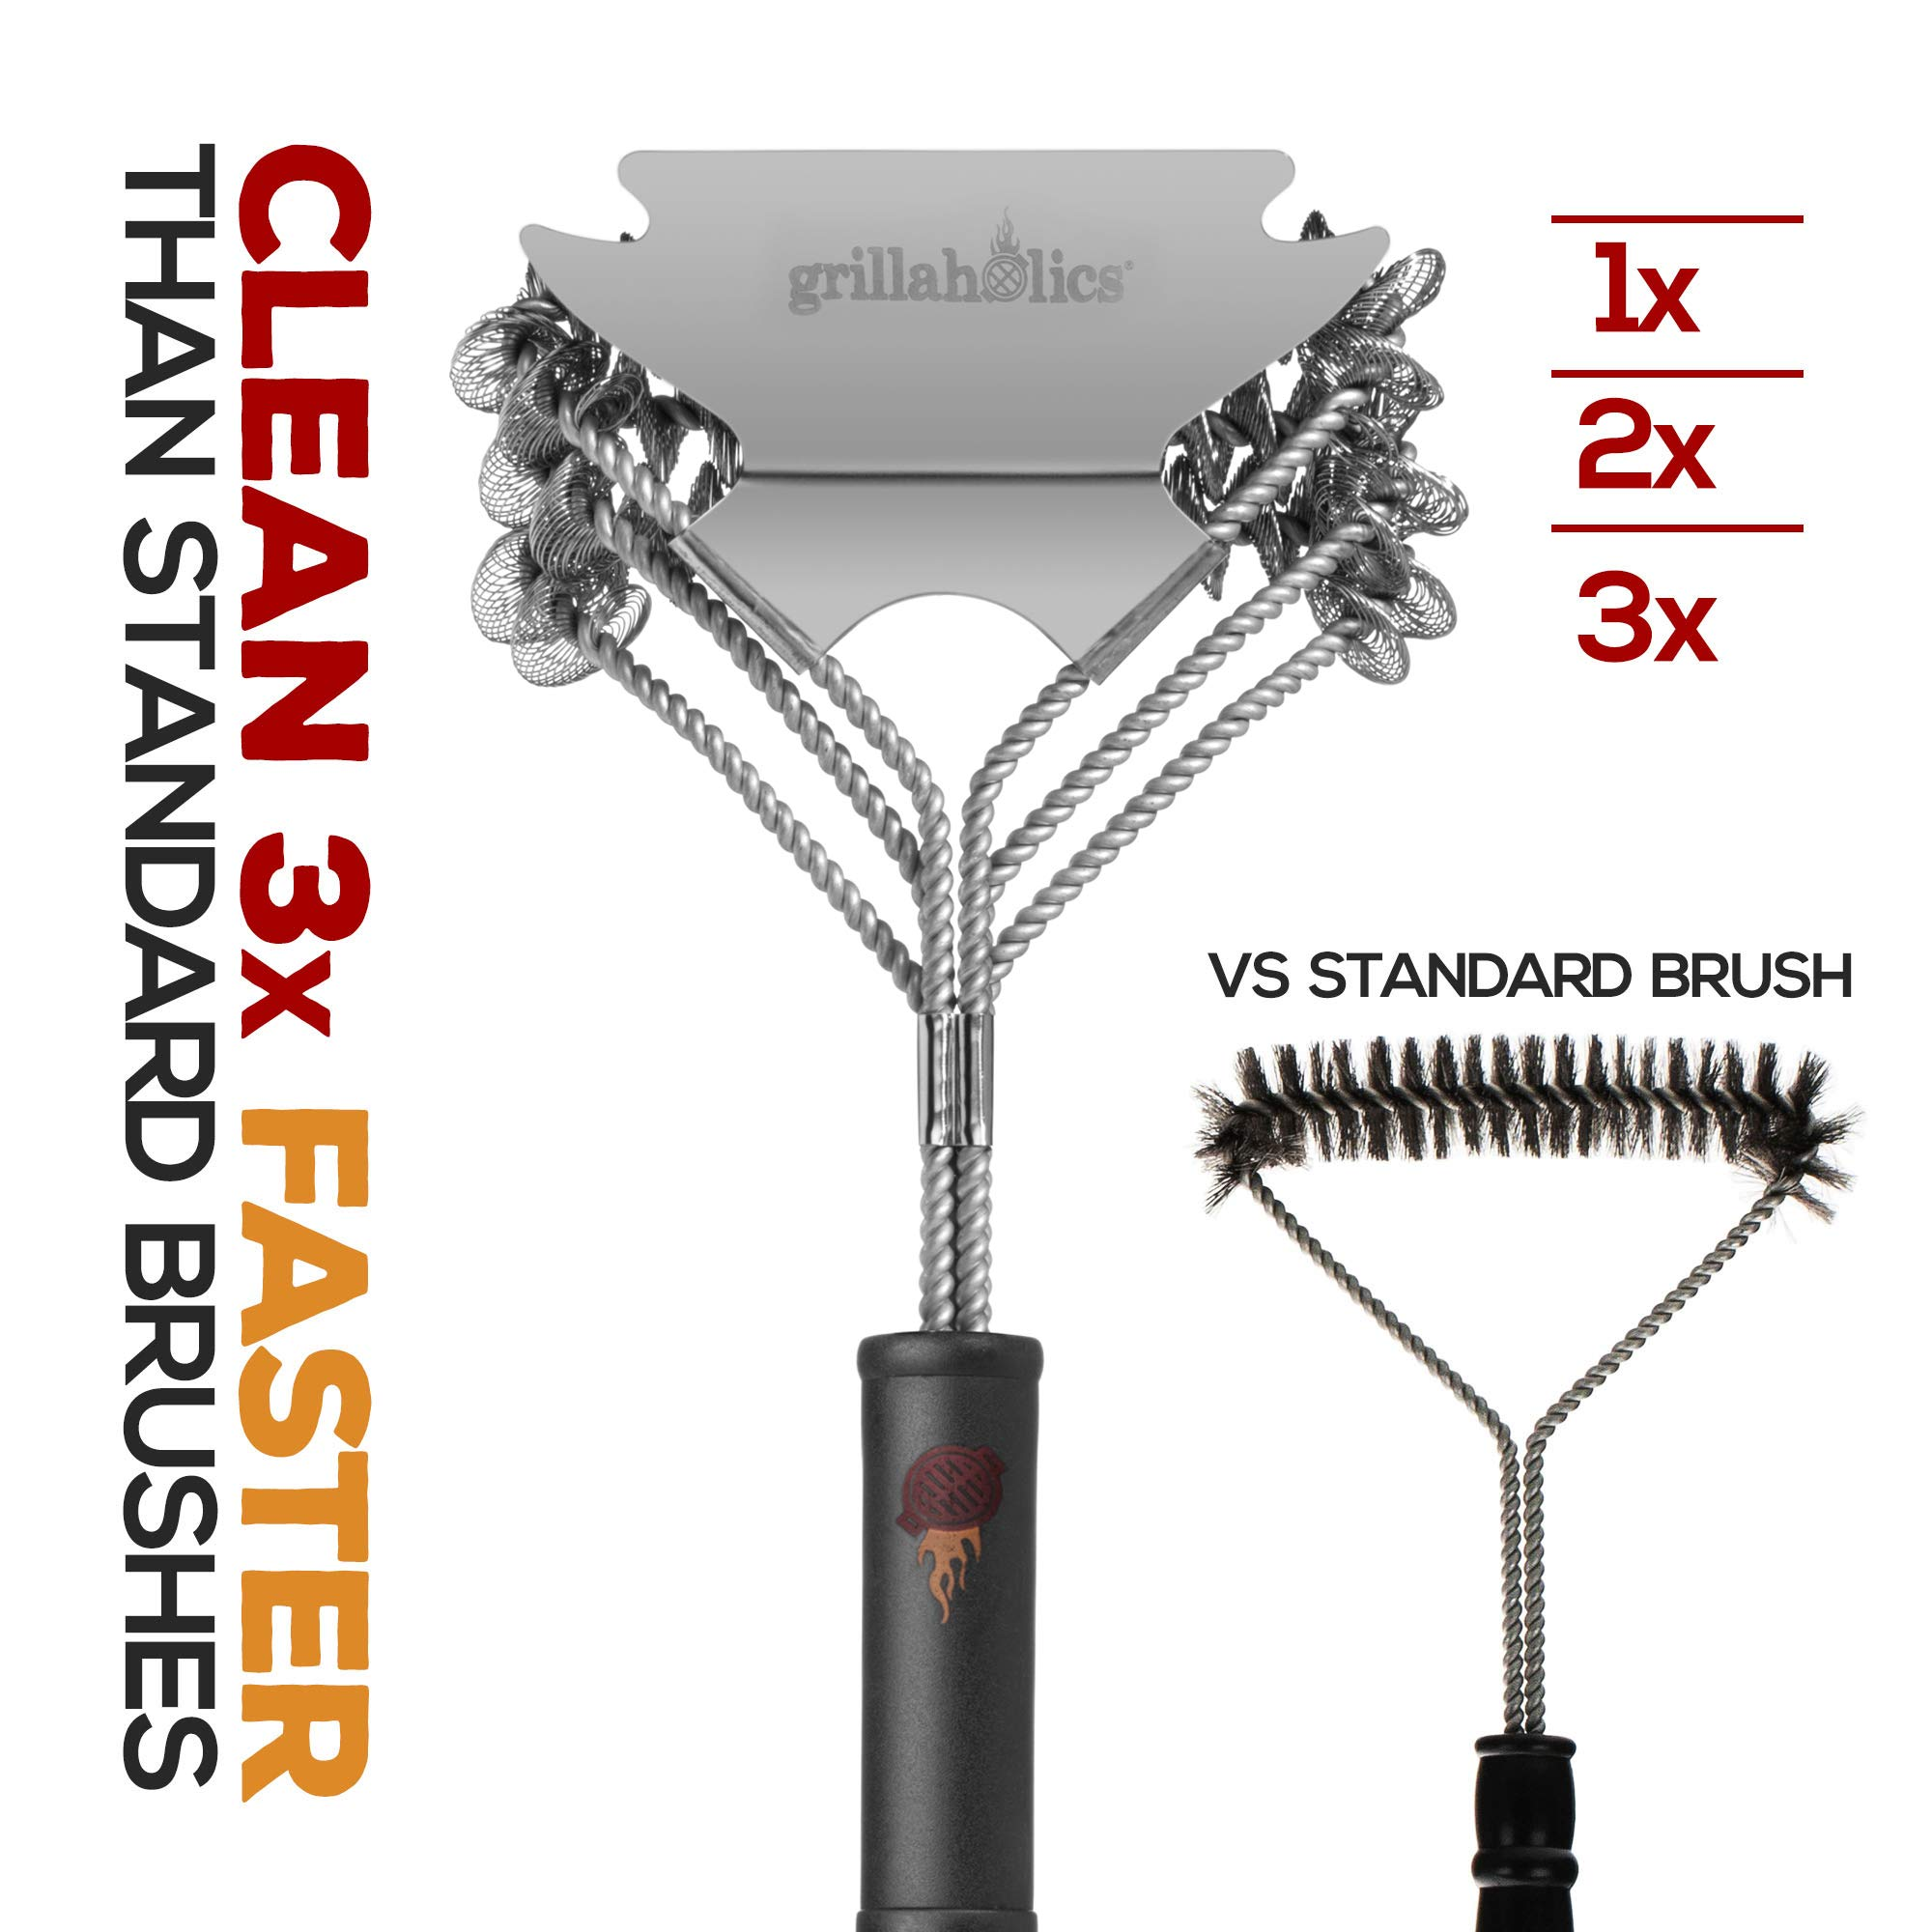 Grillaholics Grill Brush Bristle Free - Safe Grill Cleaning with No Wire Bristles - Professional Heavy Duty Stainless Steel Coils and Scraper - Lifetime Manufacturers Warranty by Grillaholics (Image #6)